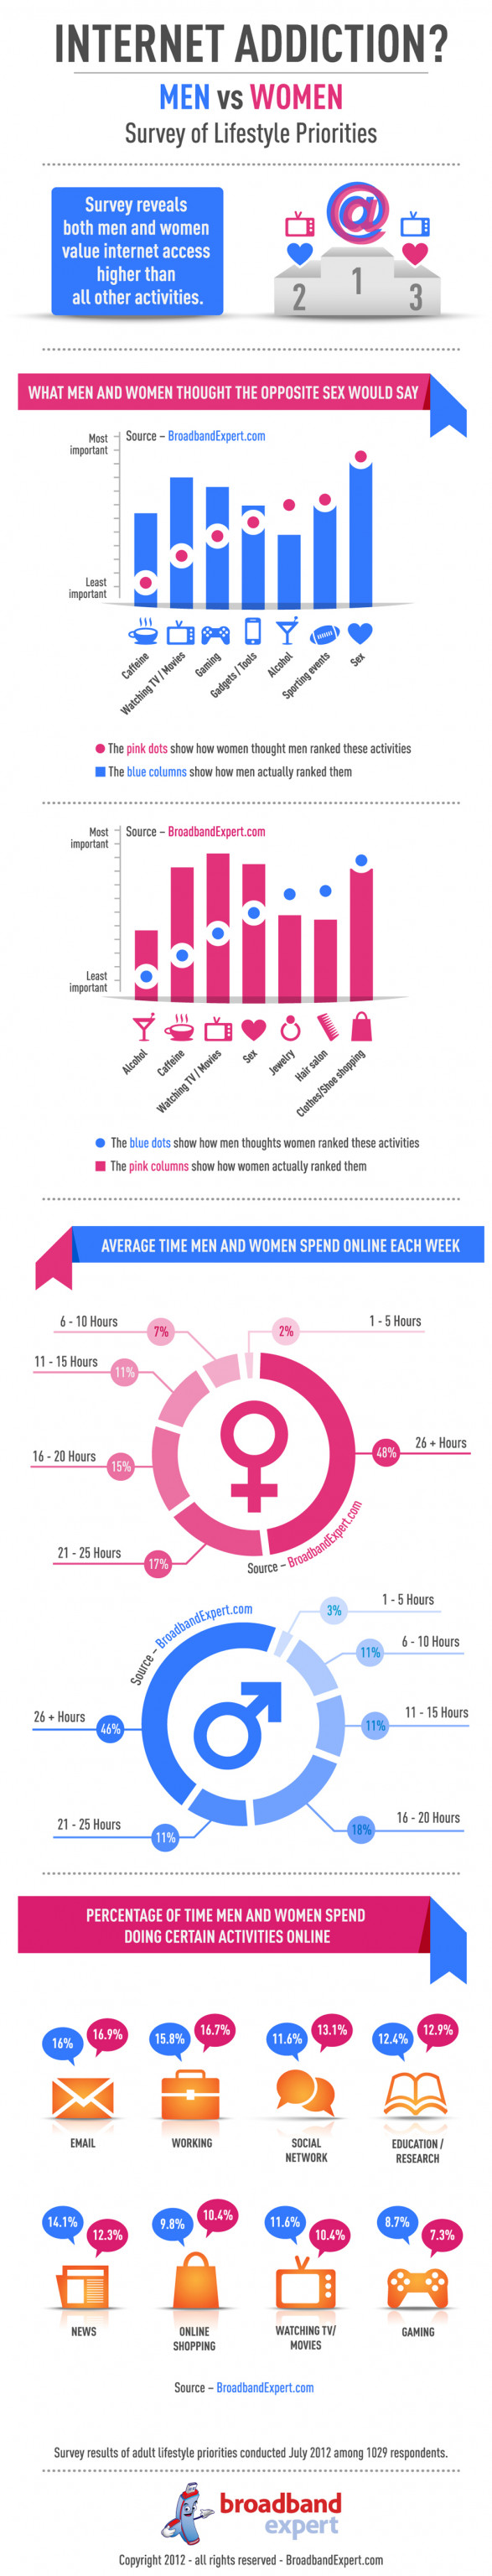 Internet Addiction - Men vs Women